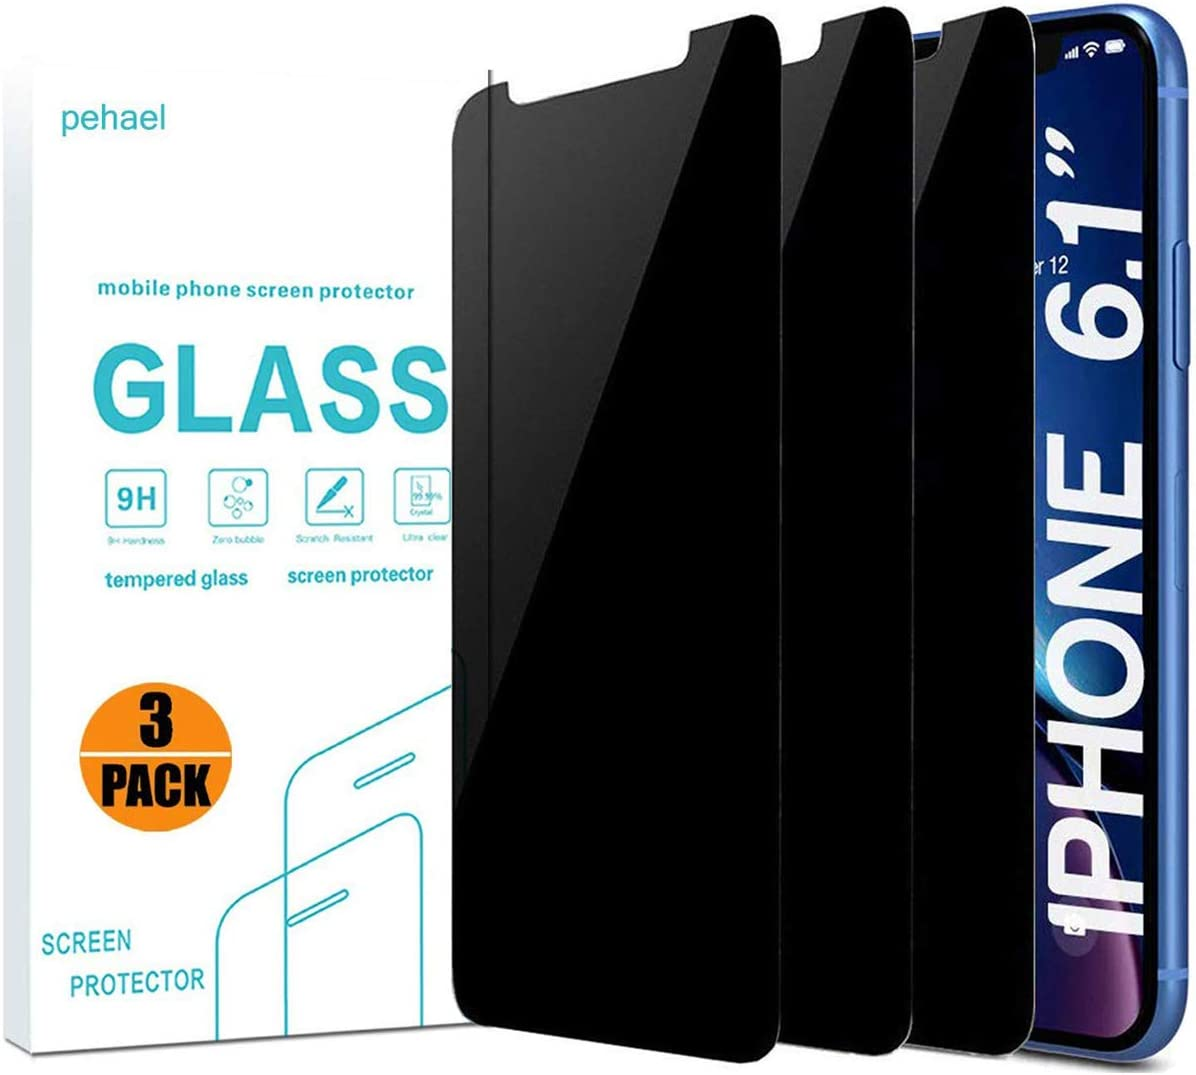 Pehael 3D Touch 3 Pack Privacy Screen Protector $5.10 Coupon